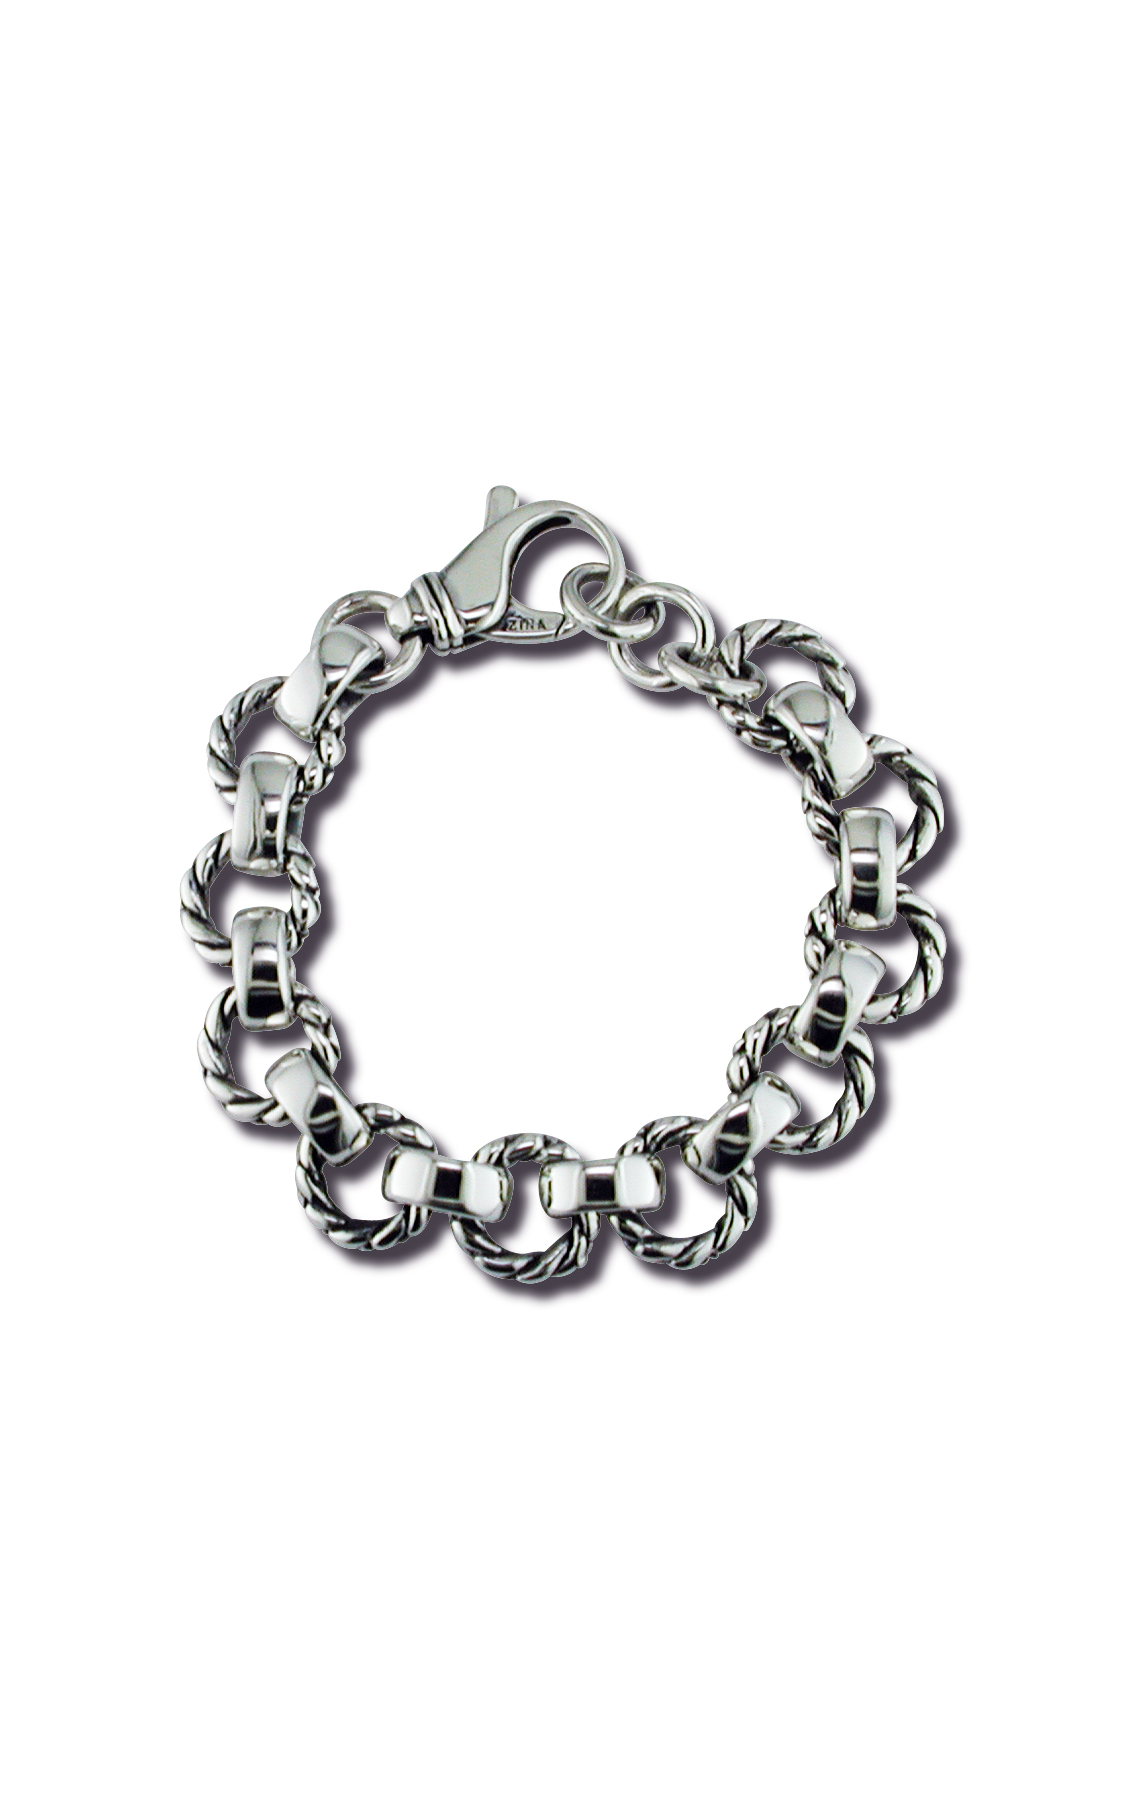 Zina Contemporary Bracelet A699-7 product image